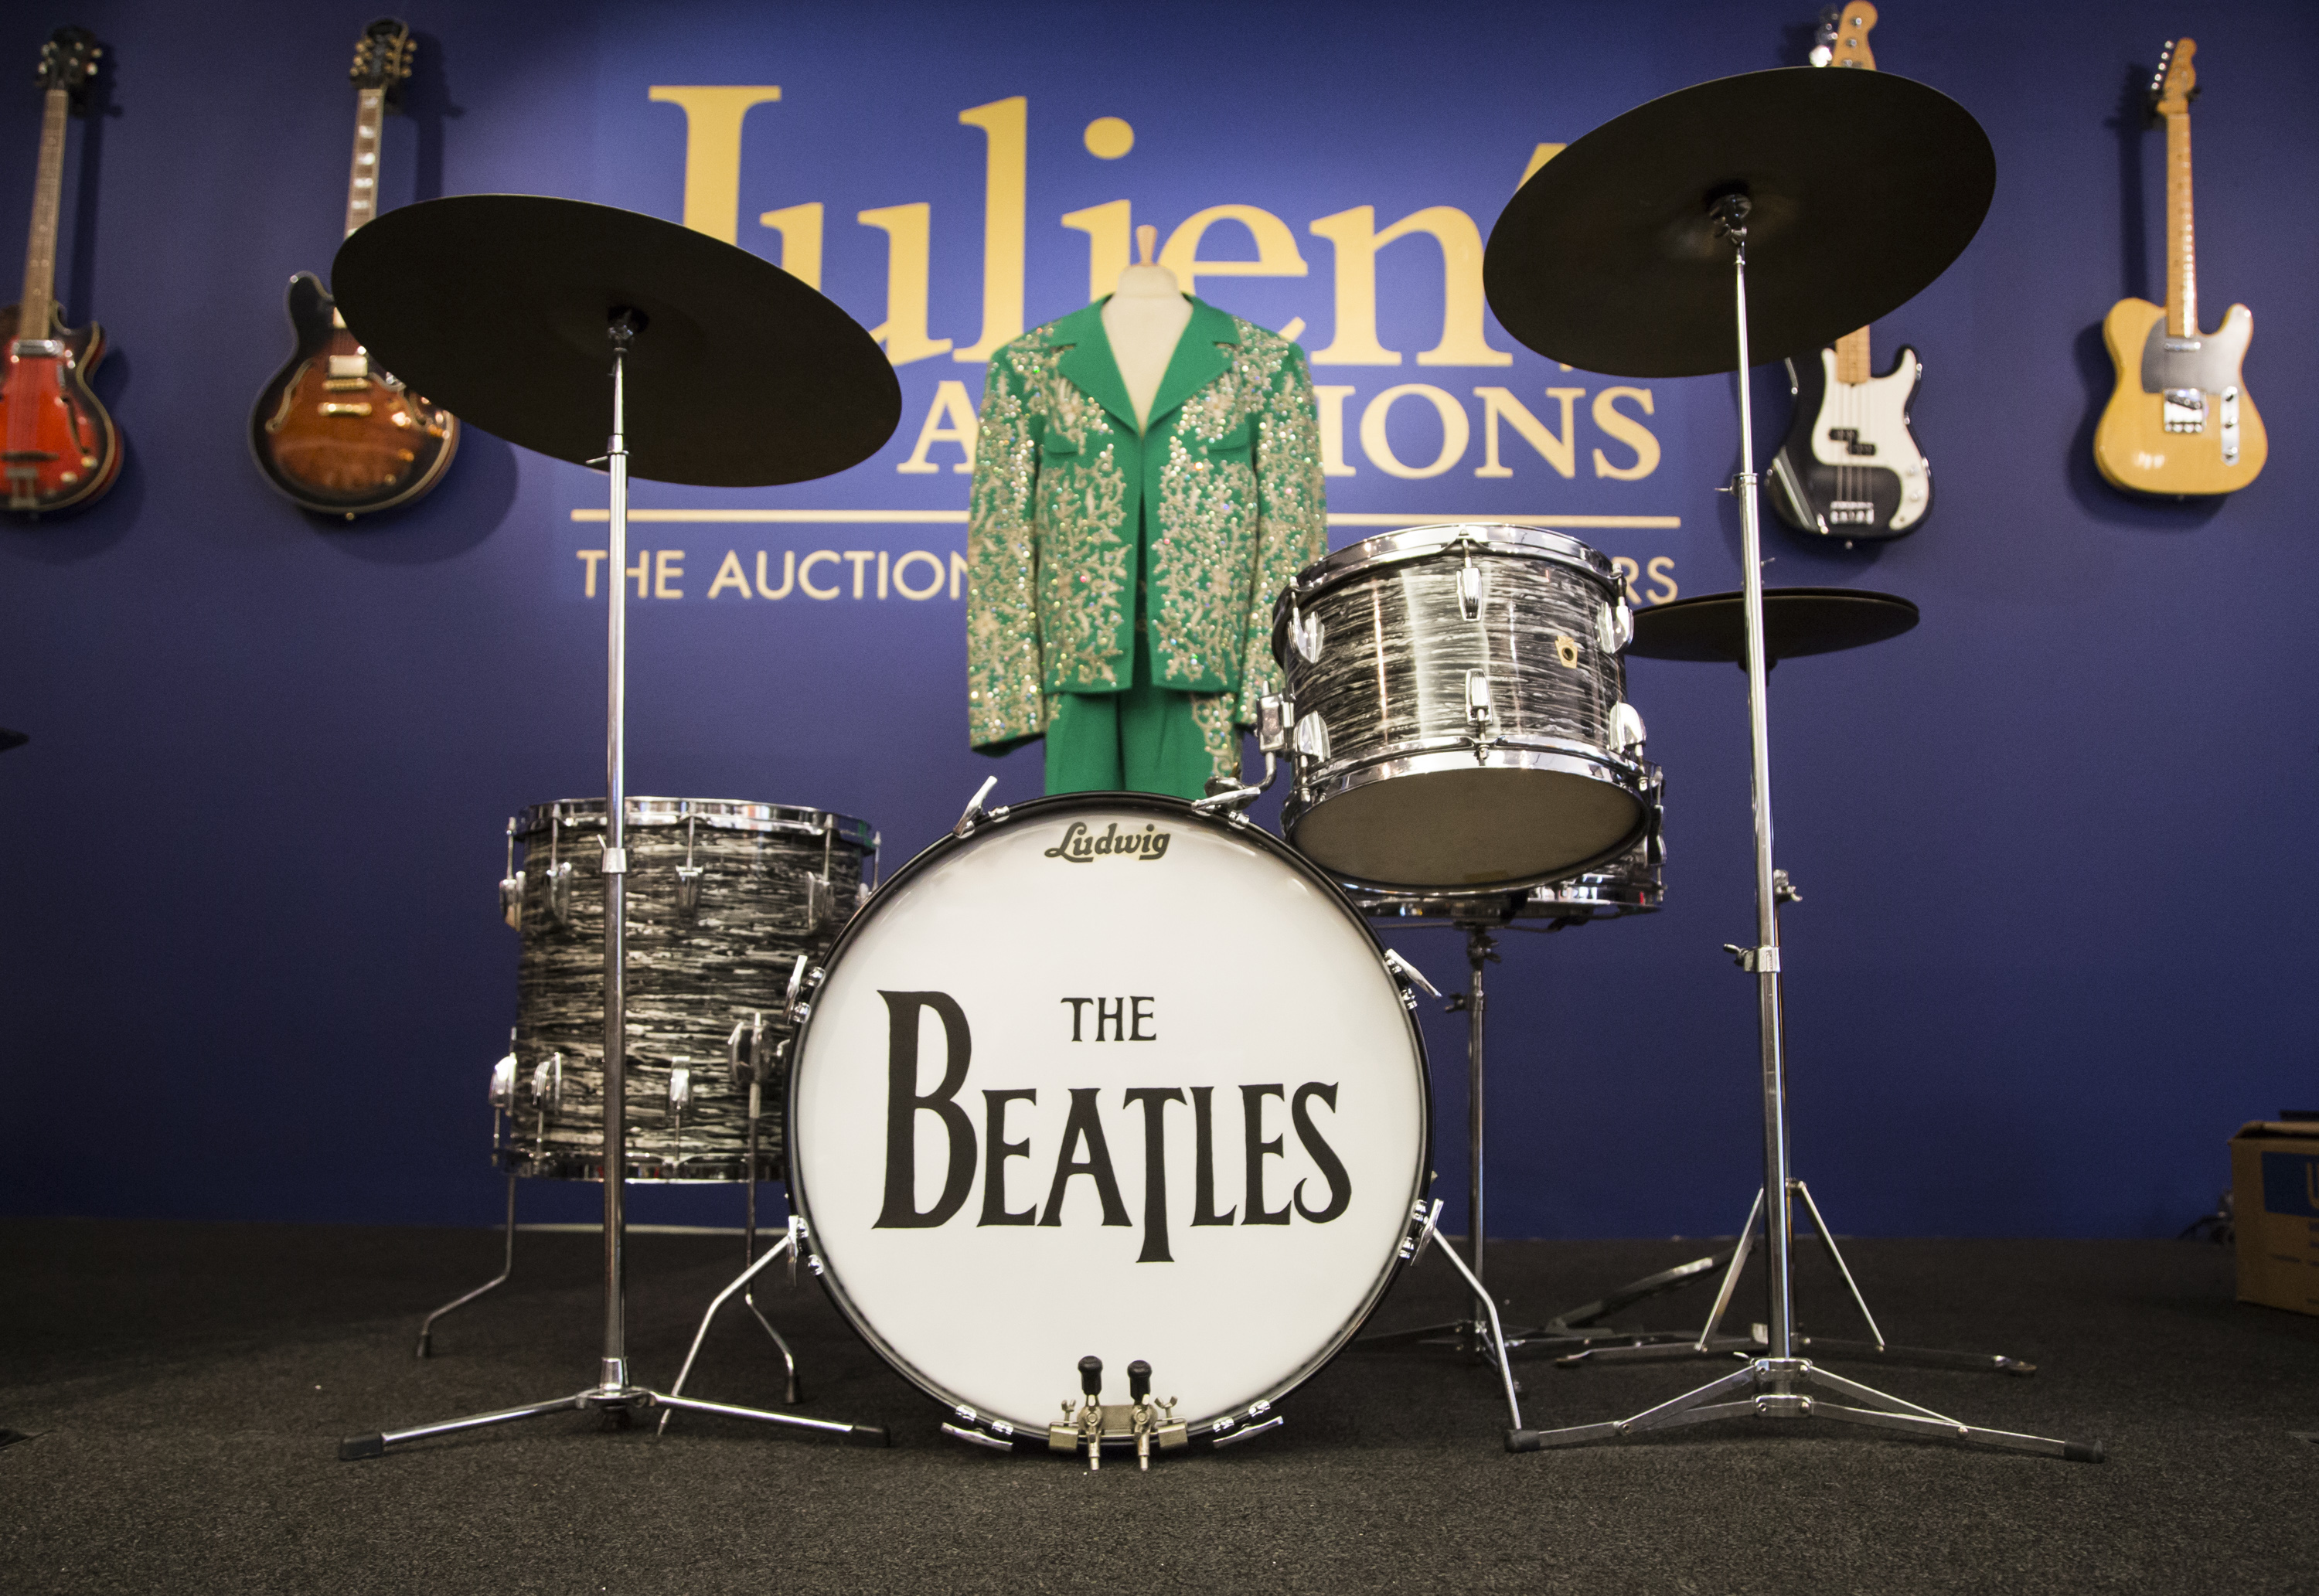 Ringo Starrs 1963 Ludwig Drum Kit Which Indianapolis Colts Owner Jim Irsay Purchased For Over 2 Million At Auction